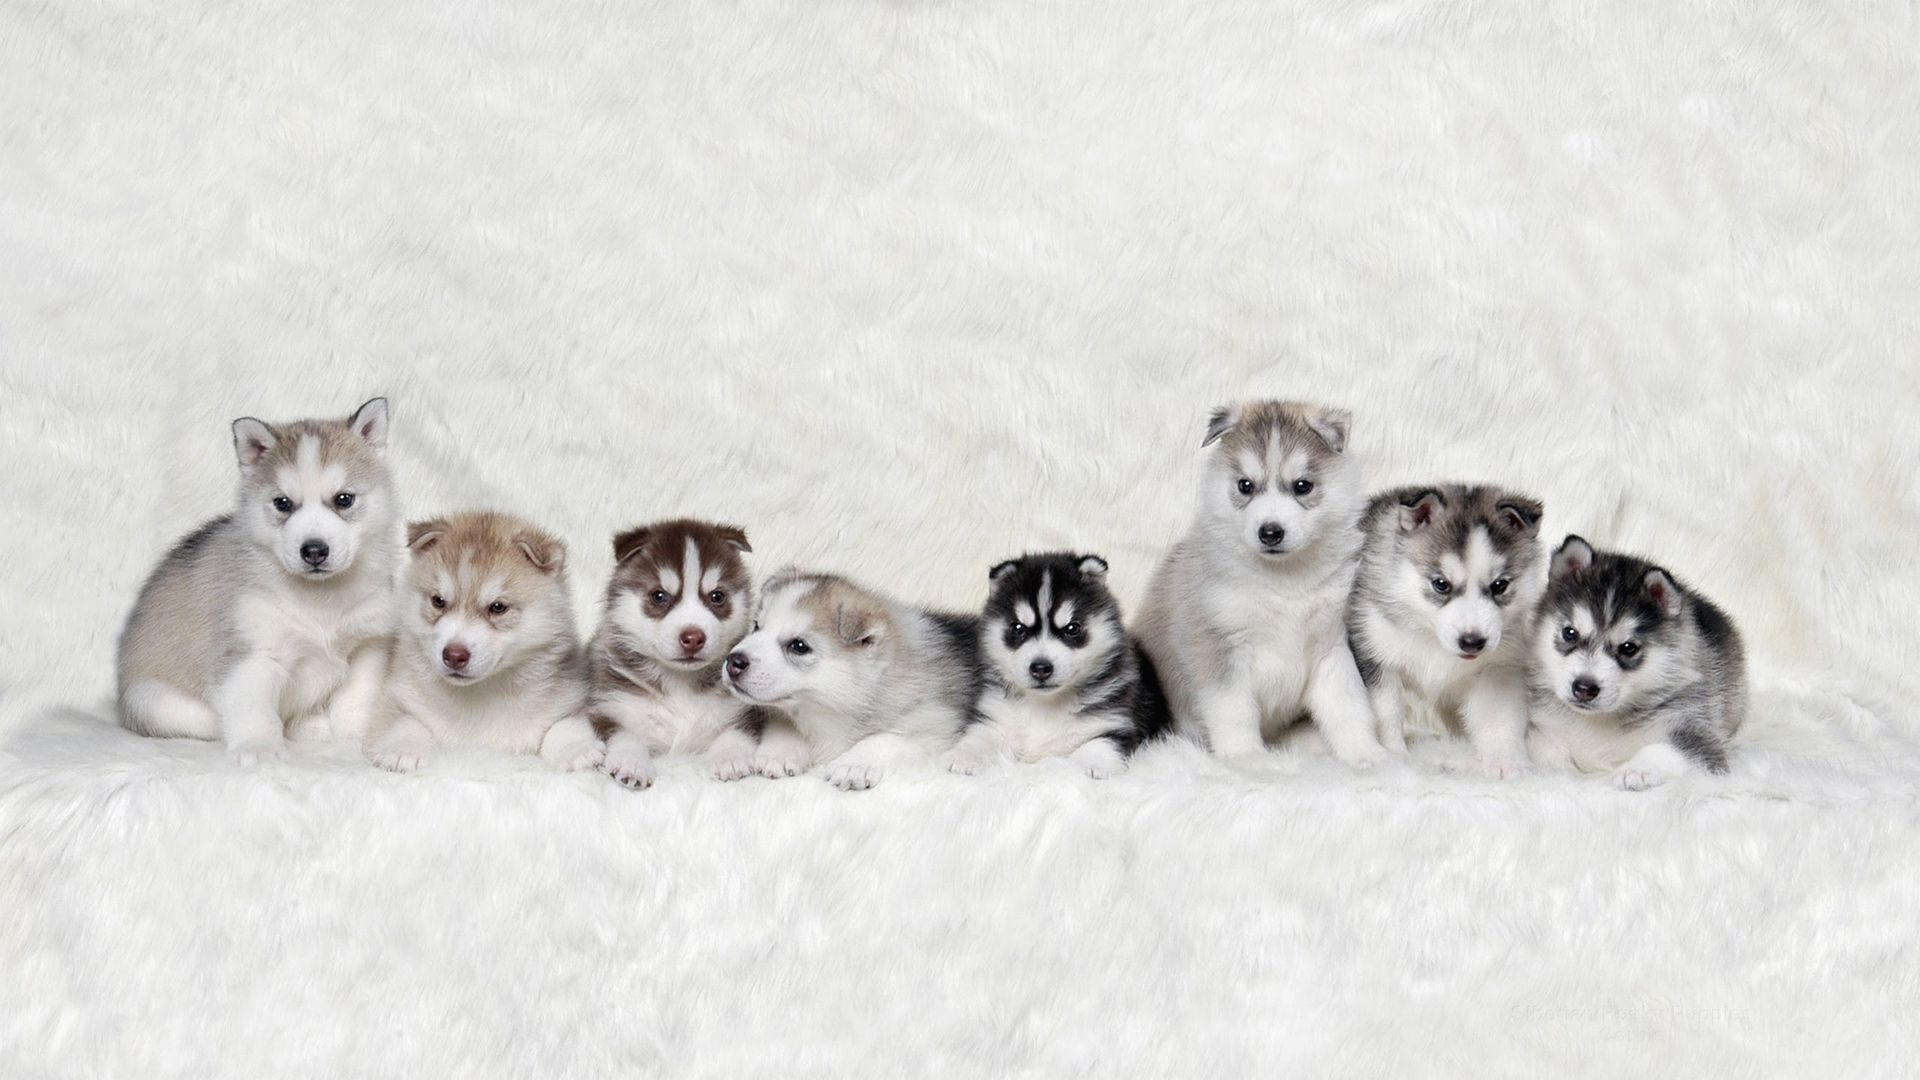 Husky Puppies 1920 X 1080 Need Iphone 6s Plus Wallpaper Background For Iphone6splus Follow Puppy Wallpaper Siberian Husky Puppies Cute Husky Puppies